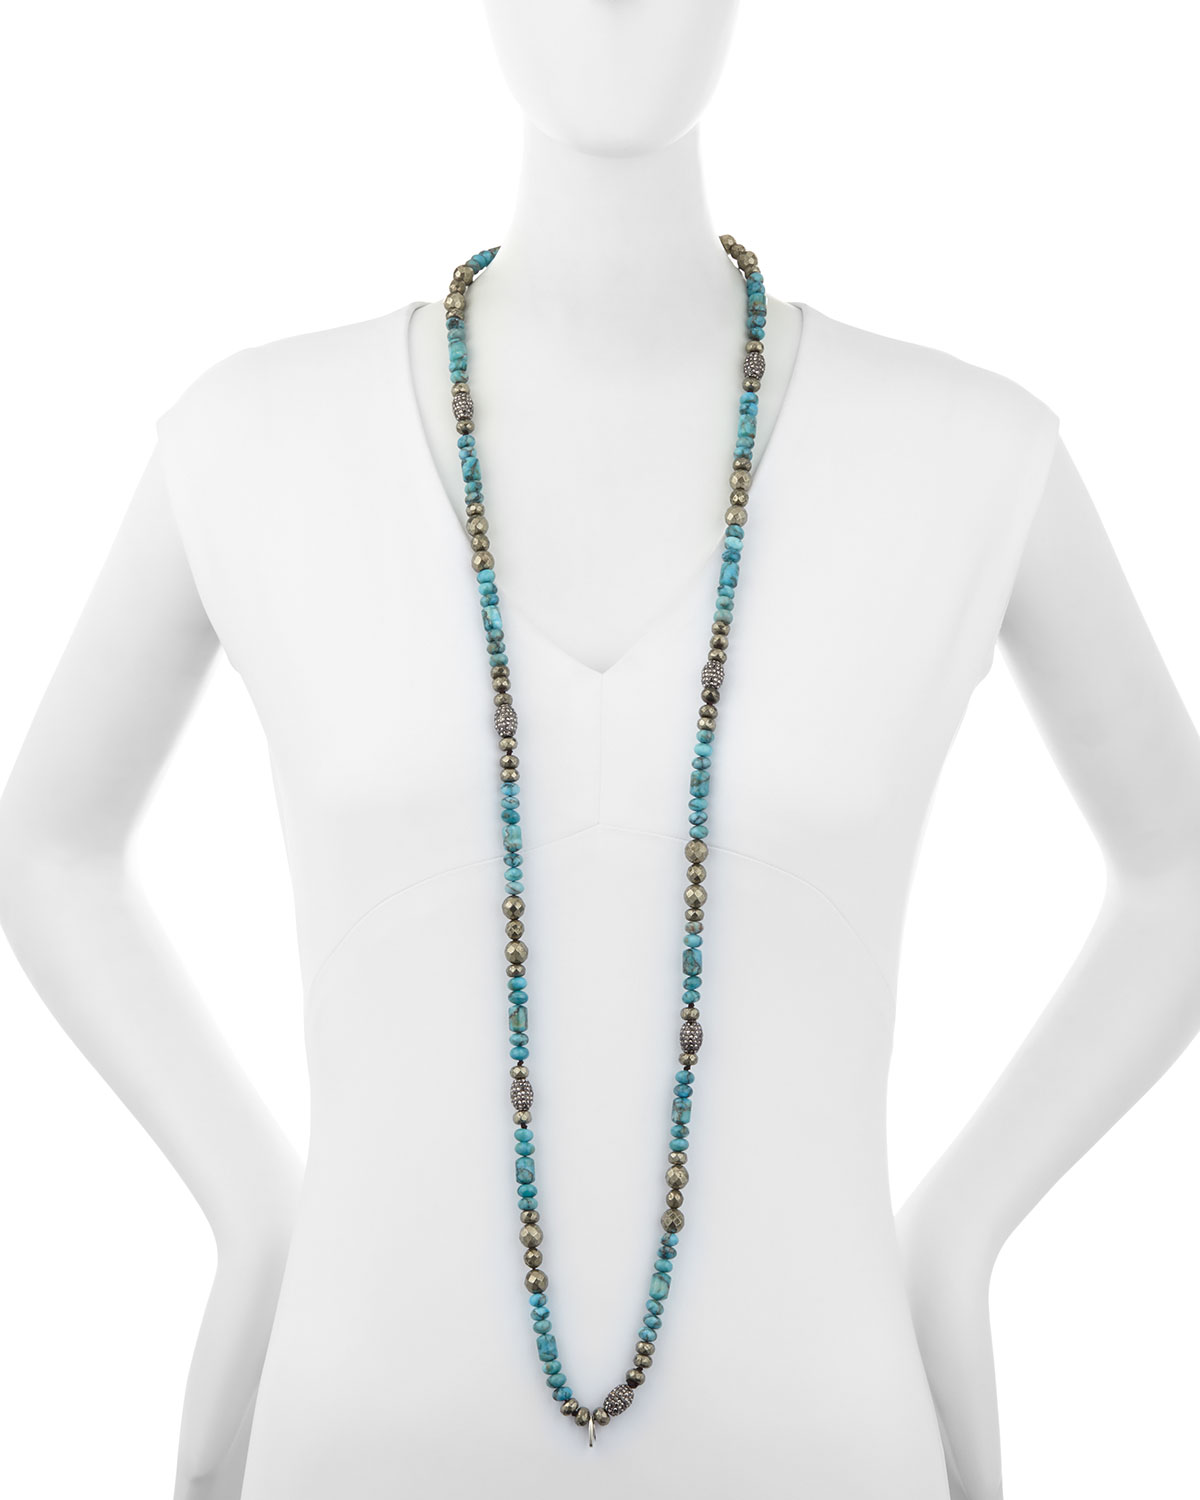 Hipchik Eleanor Long Turquoise & Pyrite Necklace CLbv6dB